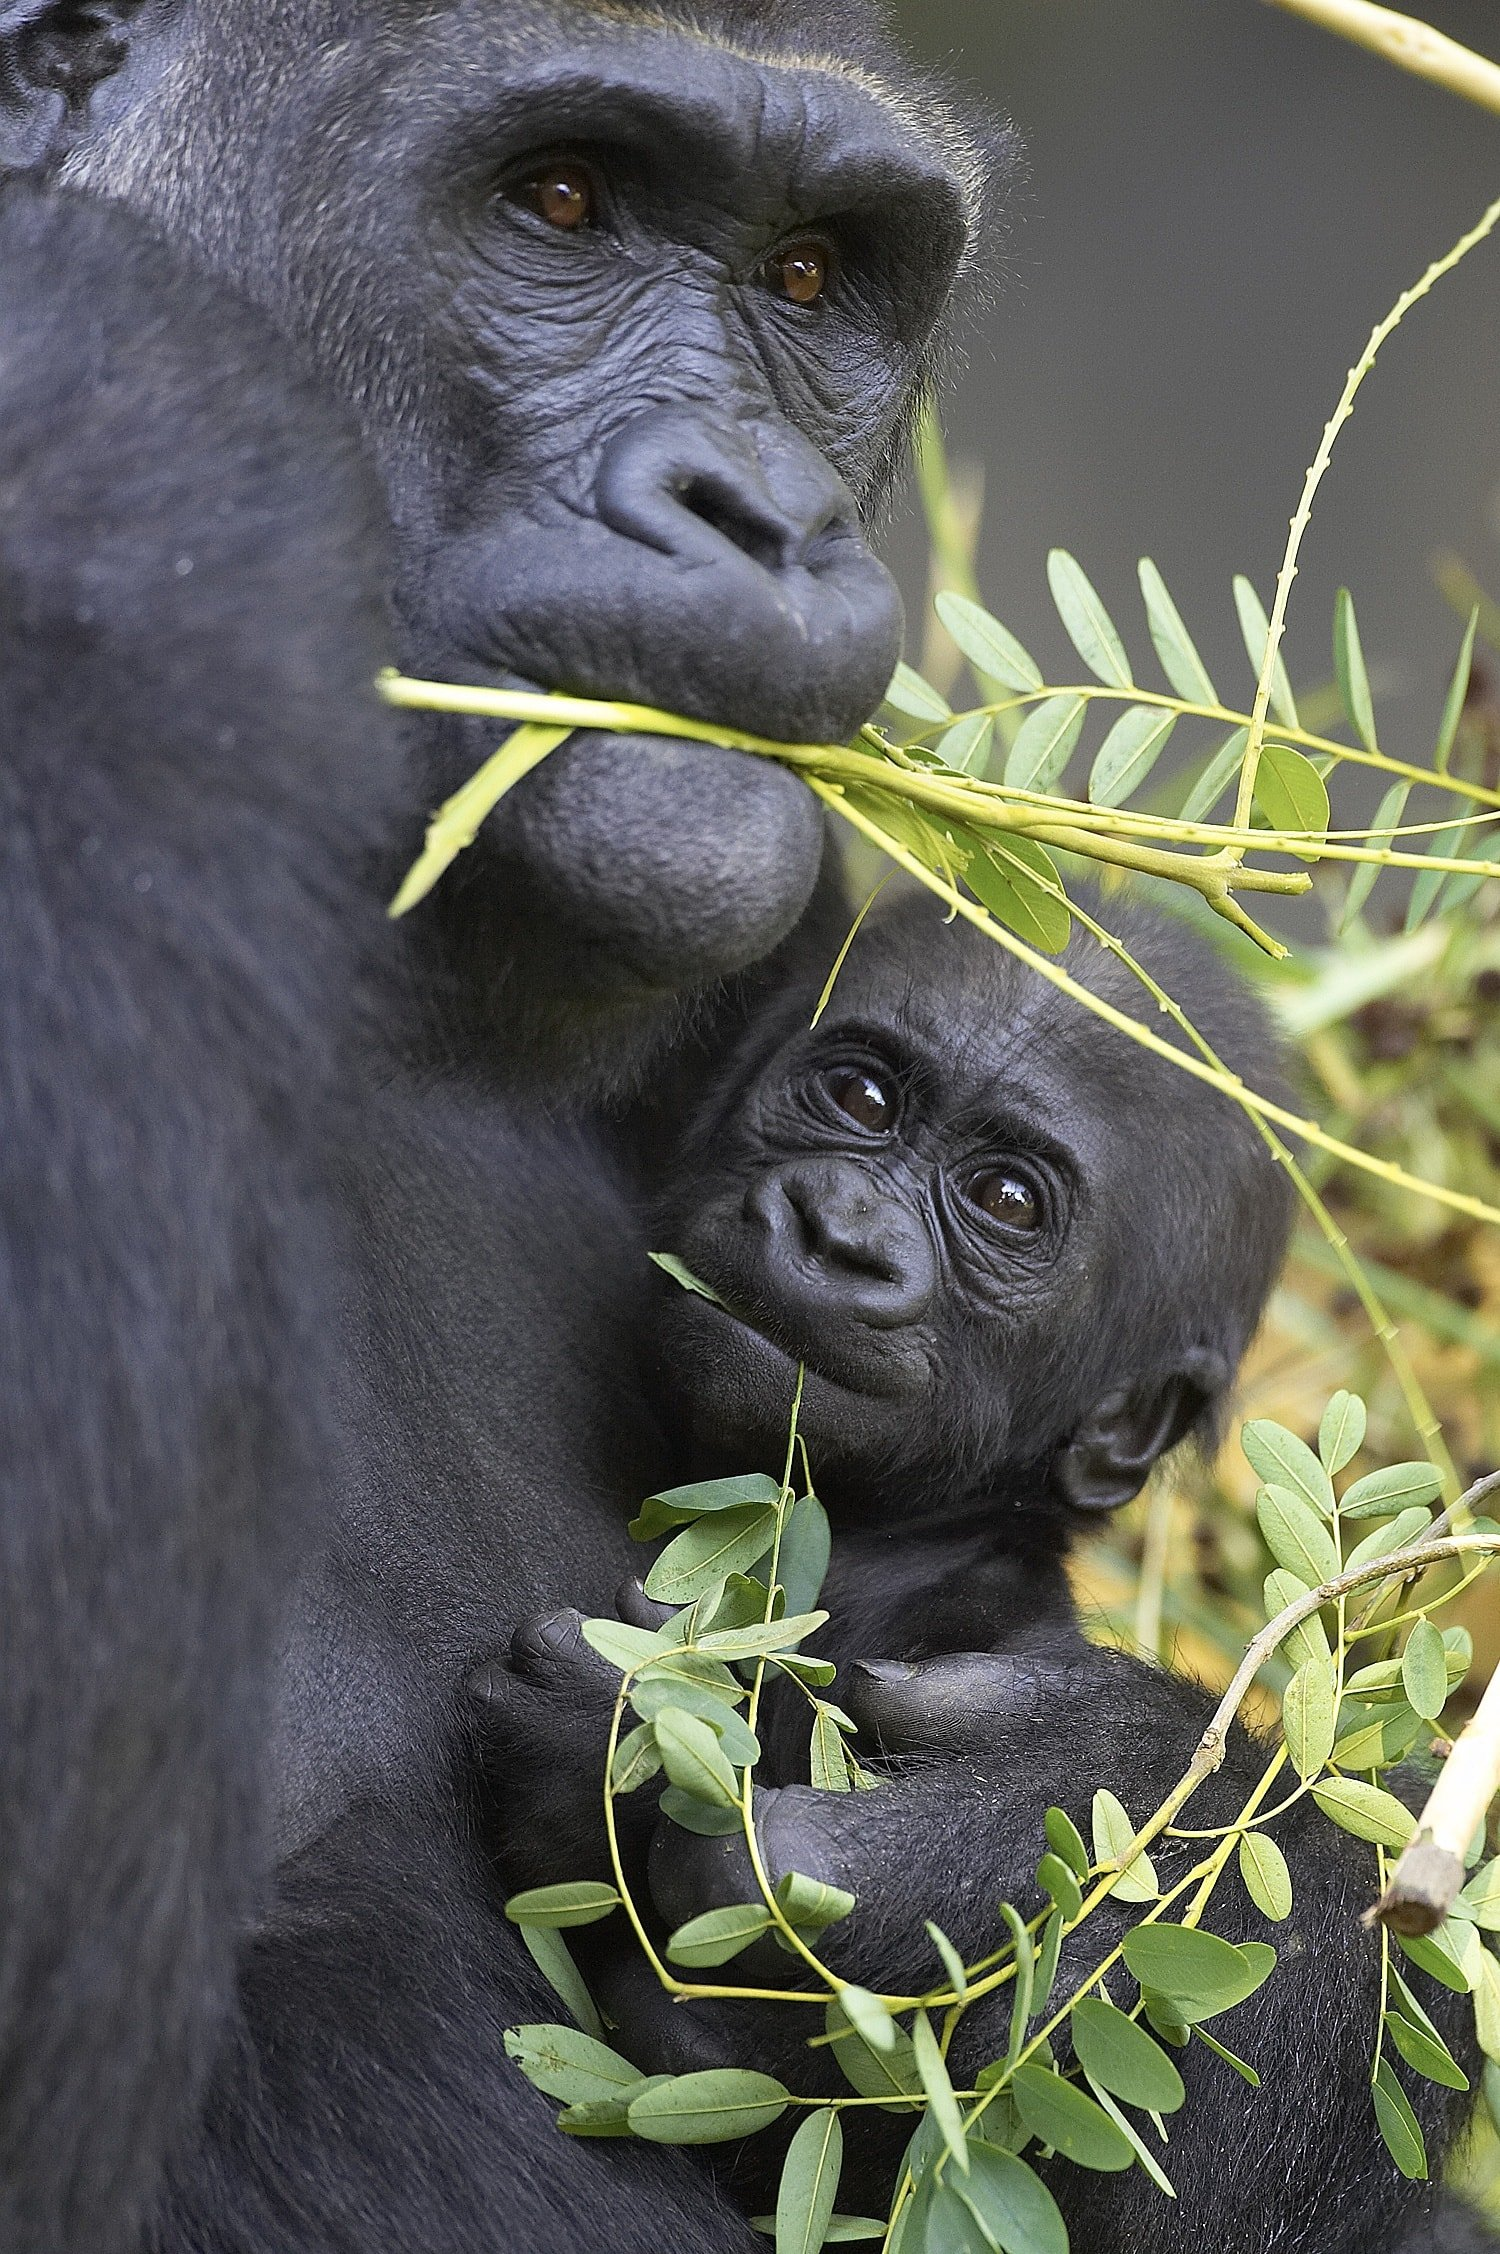 A mama gorilla and her baby at San Diego Zoo with kids